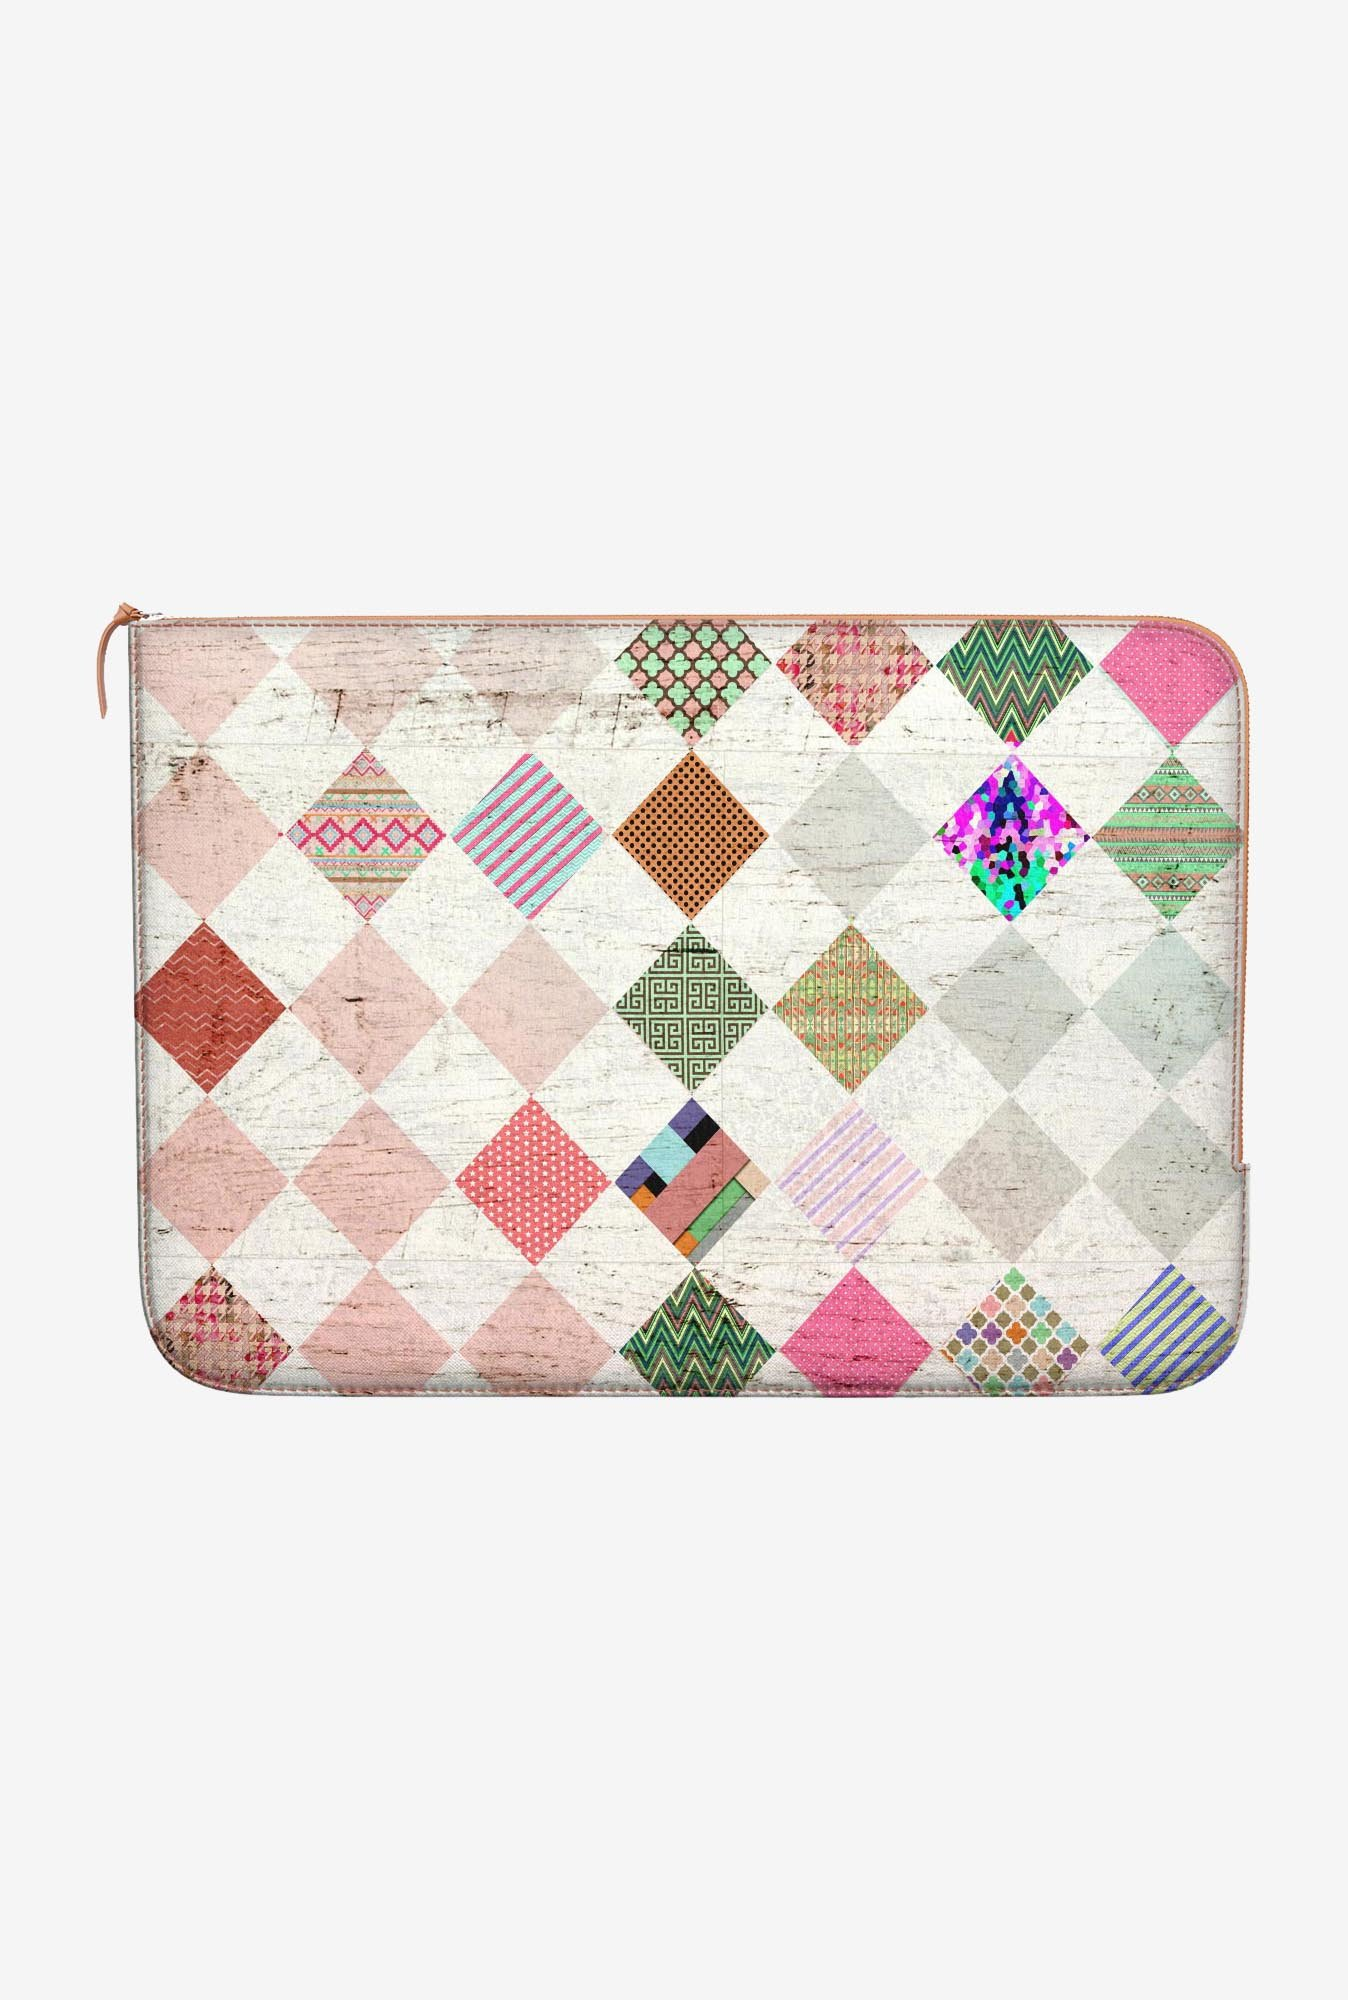 DailyObjects Diamond Shapes MacBook Air 11 Zippered Sleeve